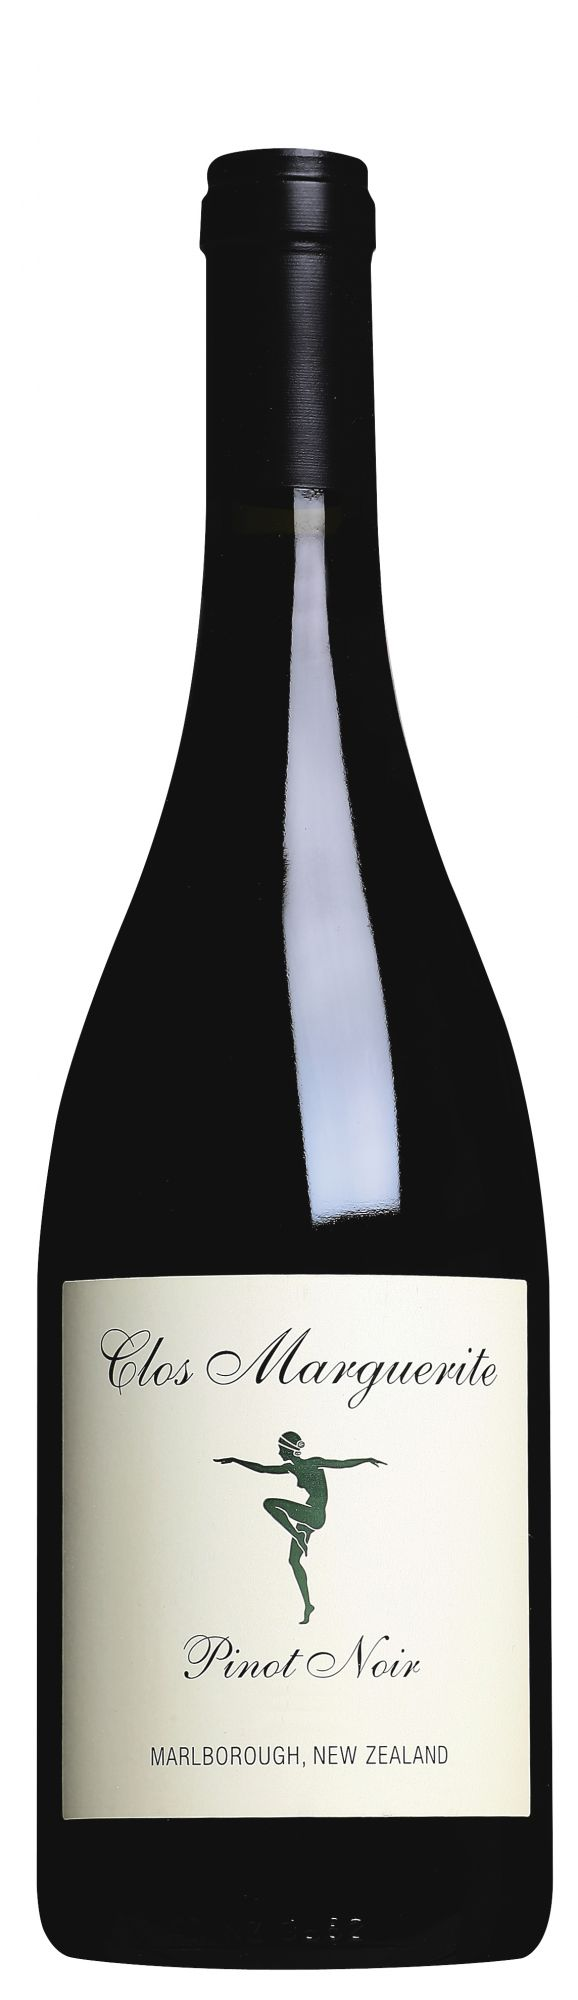 Clos Marguerite Marlborough Pinot Noir